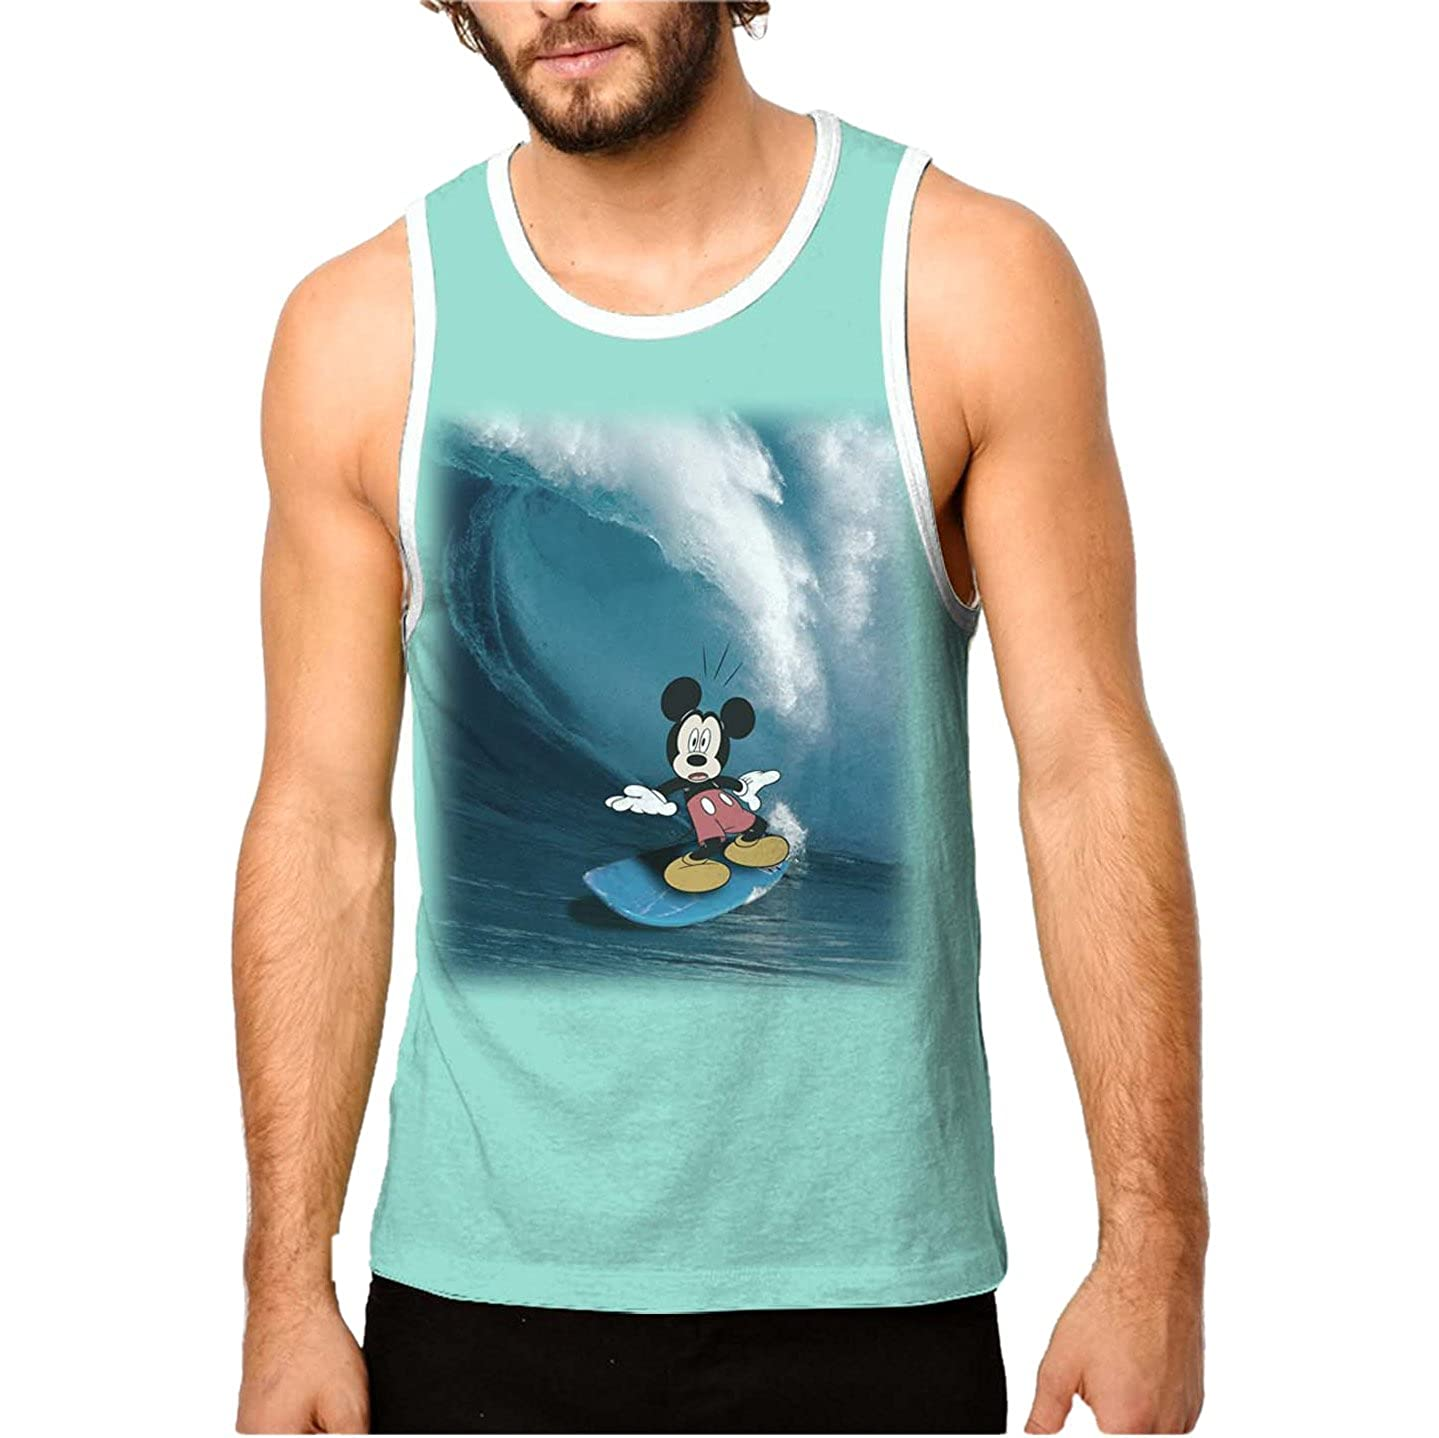 6893068f Officially licensed Disney merchandise. Mickey Mouse graphic with summer  surfing theme - Sleeveless tank top for super cool style